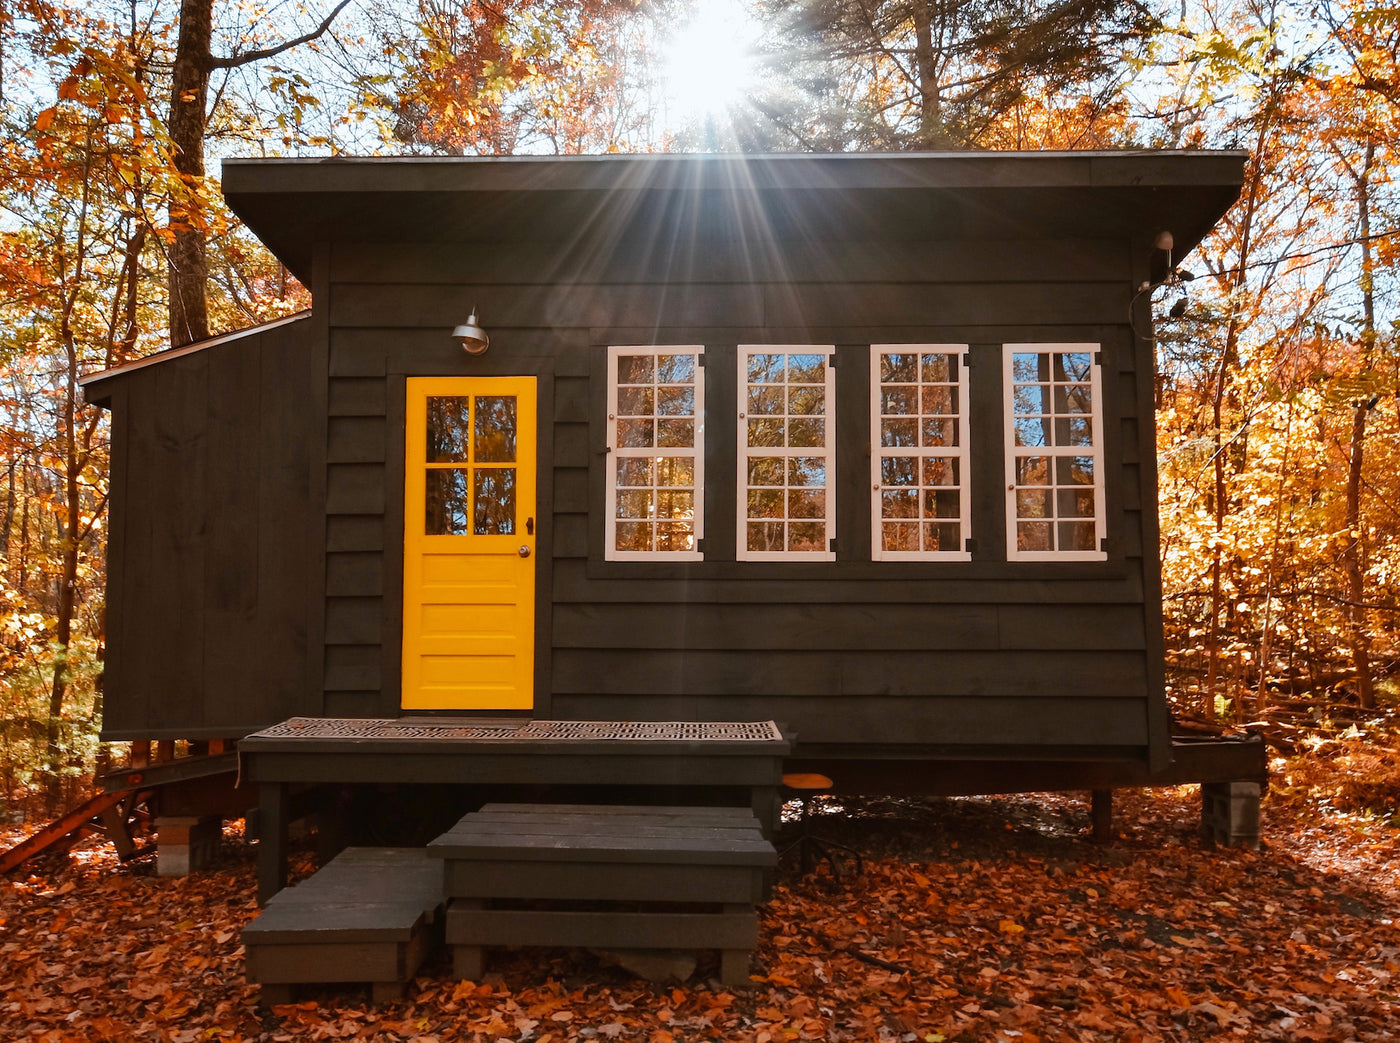 A Tiny House: The Journey Towards Sustainable Living - A Good Company